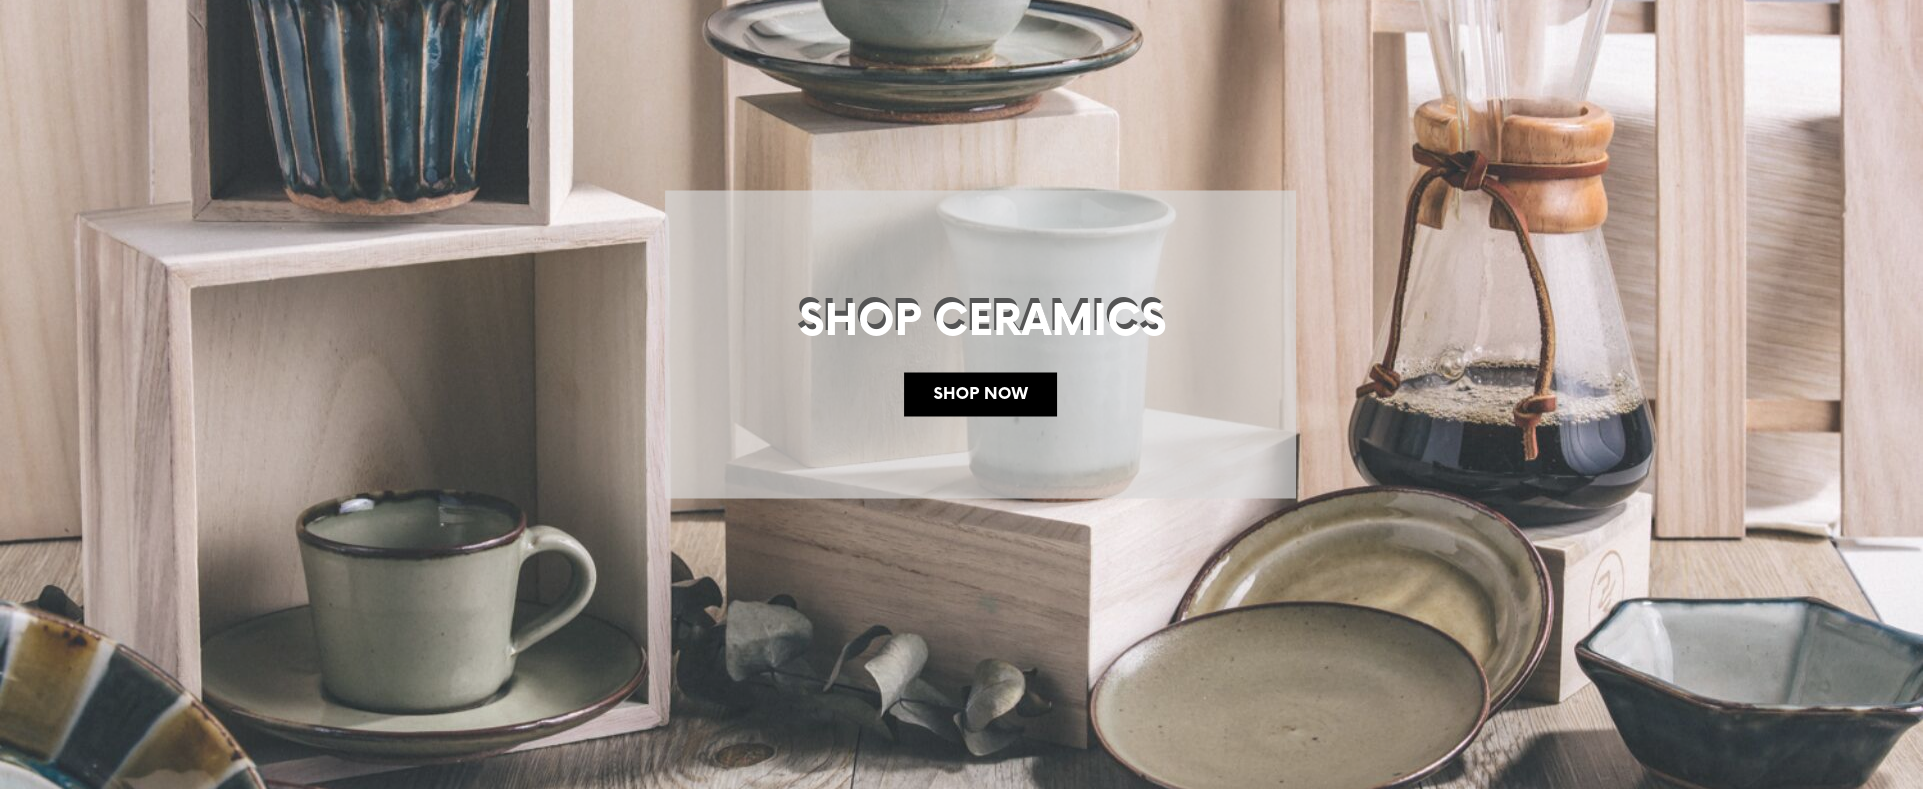 ShopCeramics_13Aug